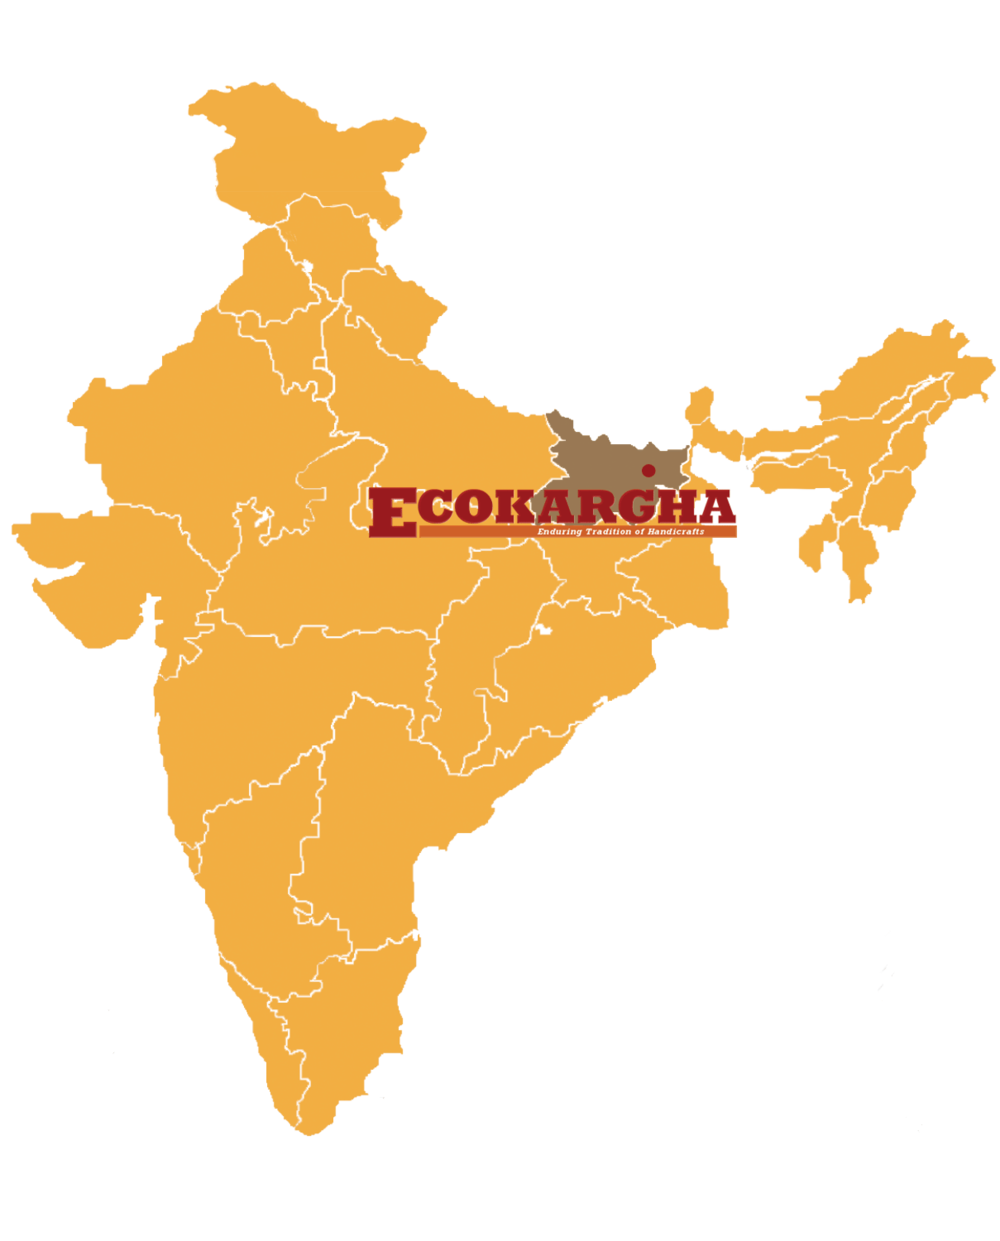 Eco-Kargha-map-with-logo.png